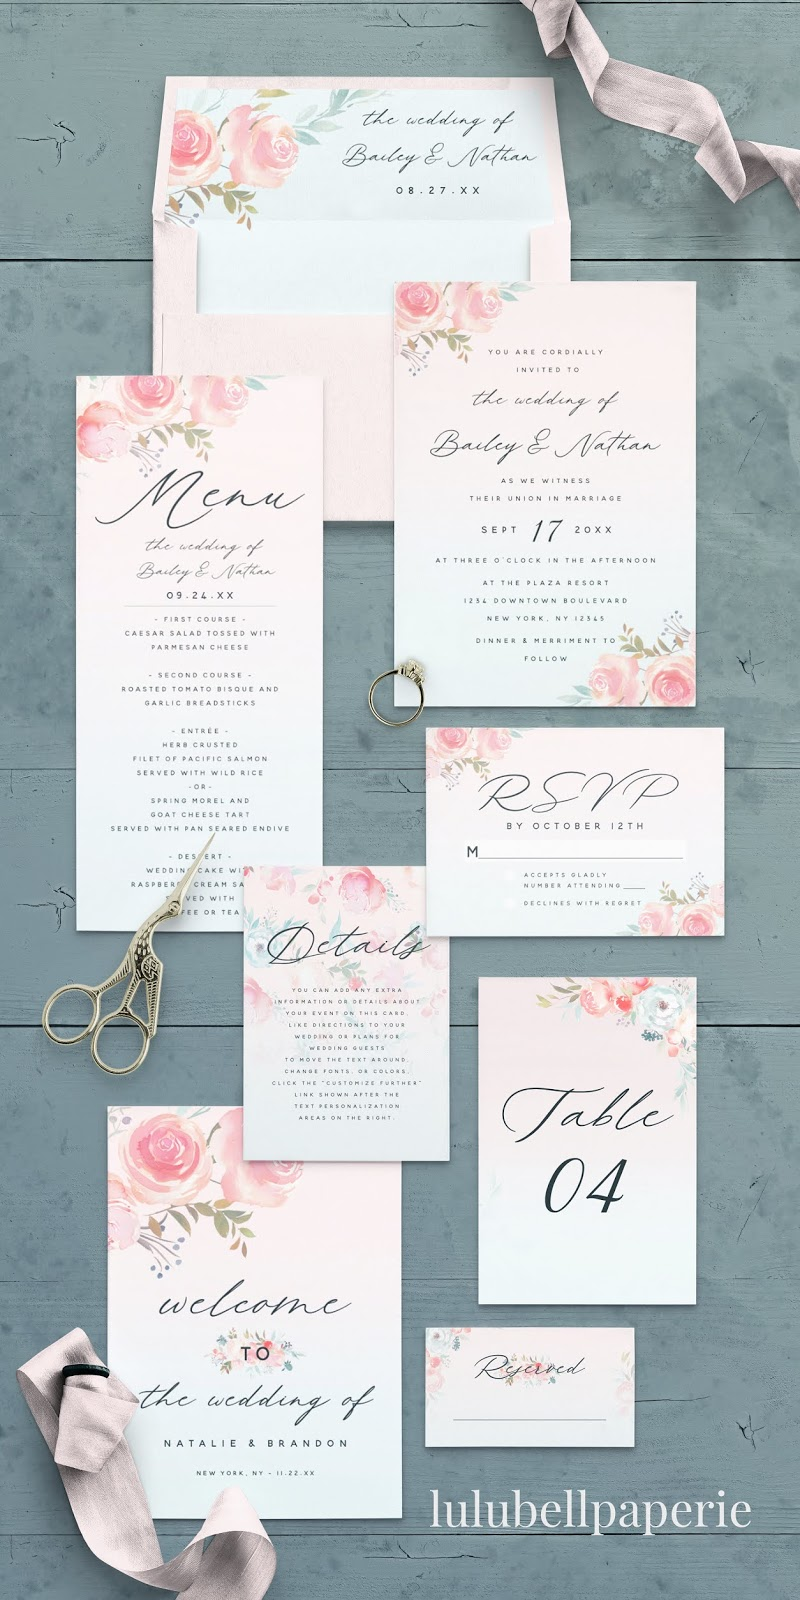 French Garden Floral Wedding Suite - Envelopes and Liners, Wedding Invitations, Dinner Menus, RSVP Cards, Detail Enclosure Cards, Table Numbers, Programs, and Placecards